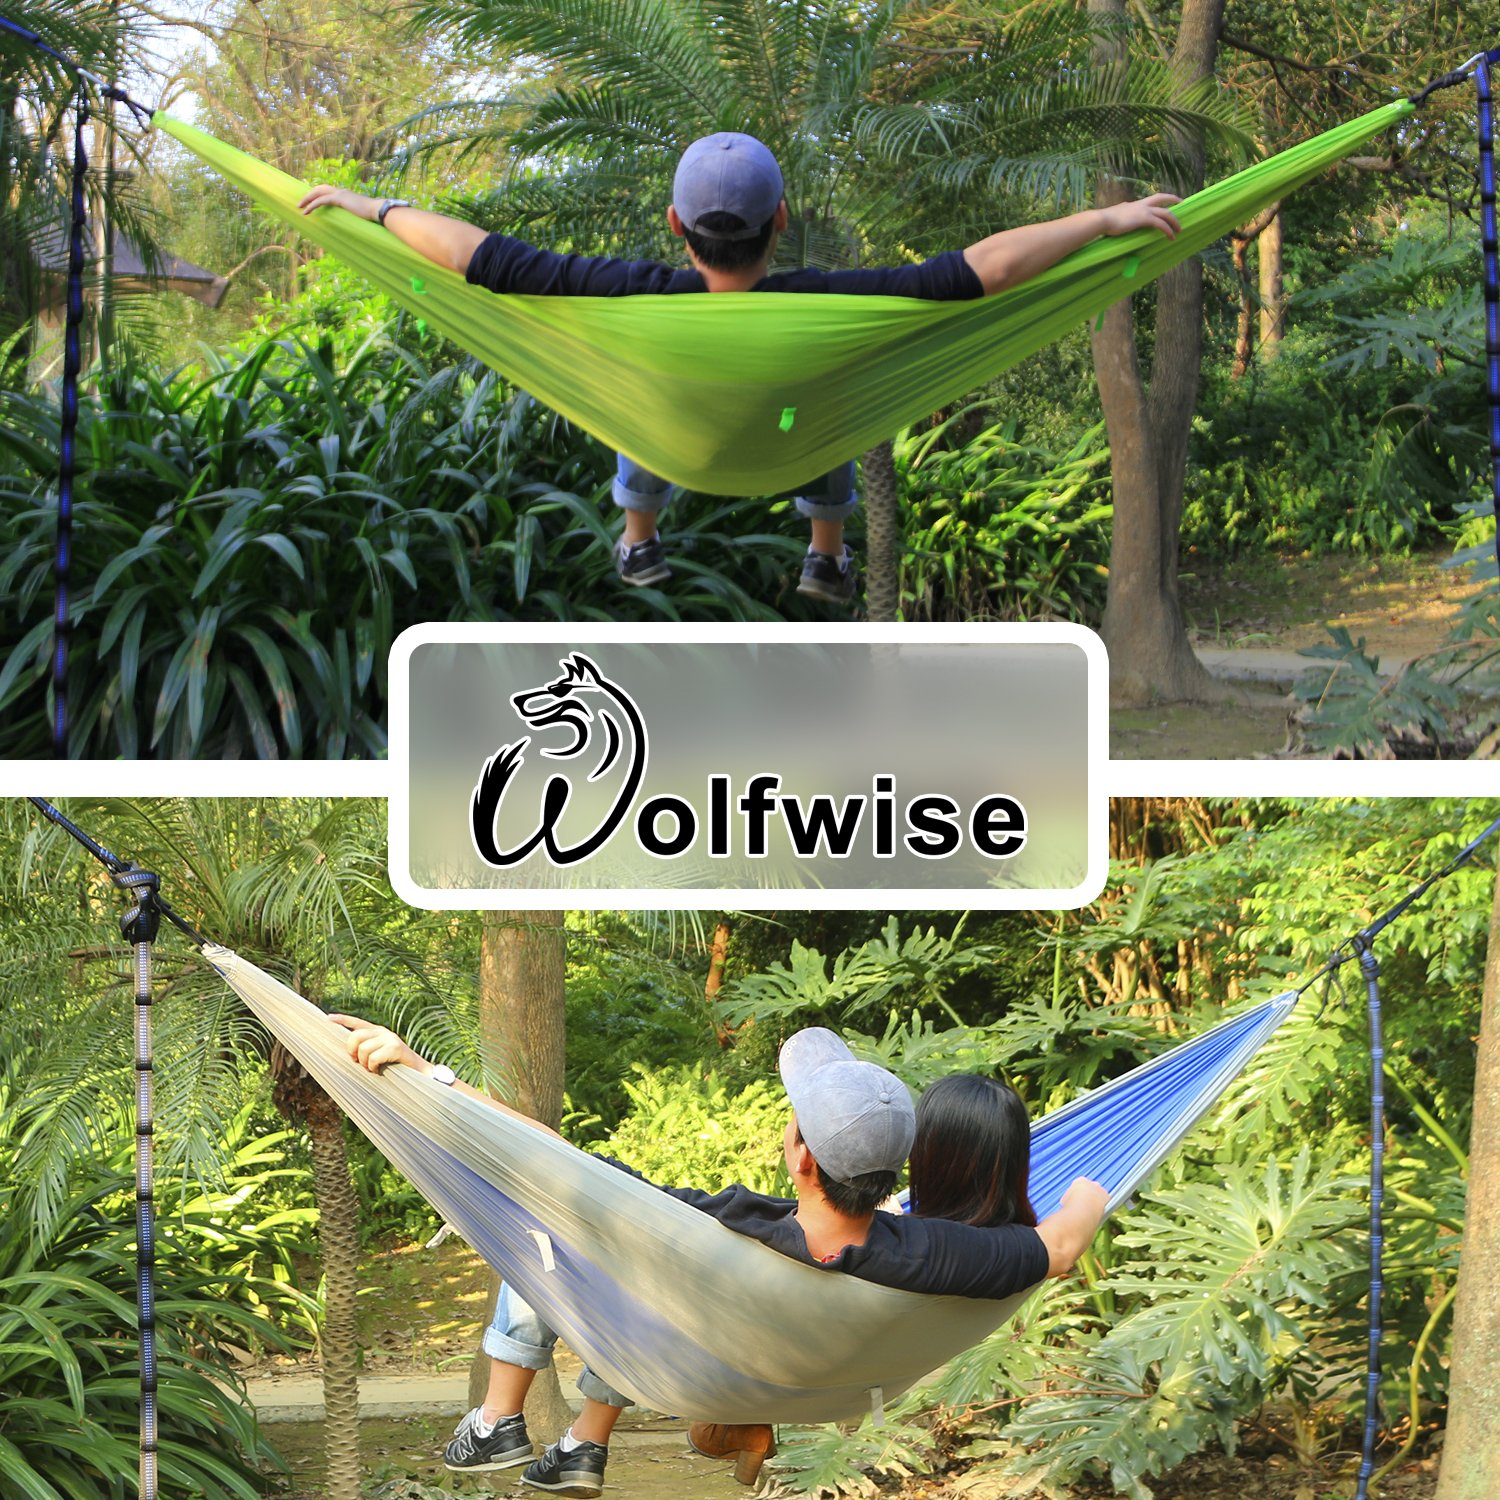 for tent person l co smsender tensile sale shop tulum trees tree nz hammock slackline